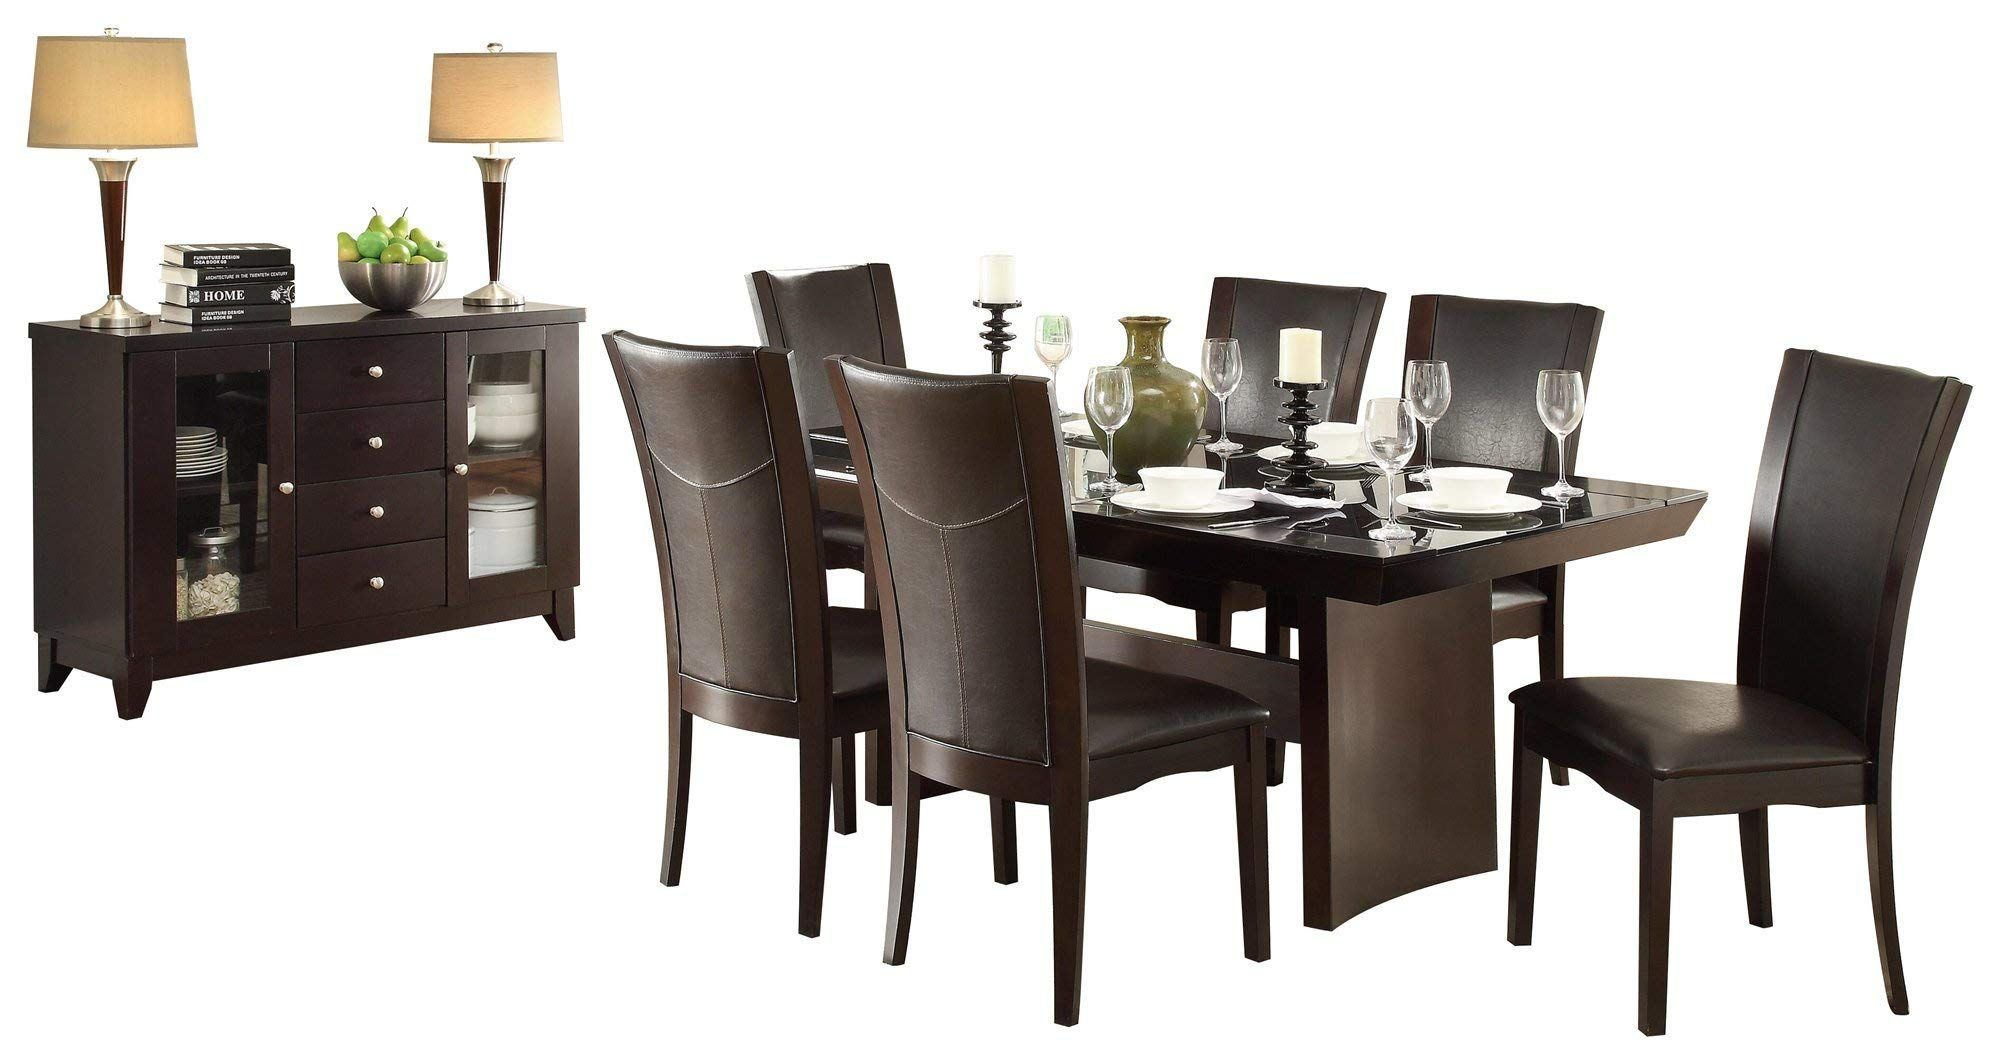 Denstein Modern 8PC Dining Set 72 inch Glass Top Table 6 ...